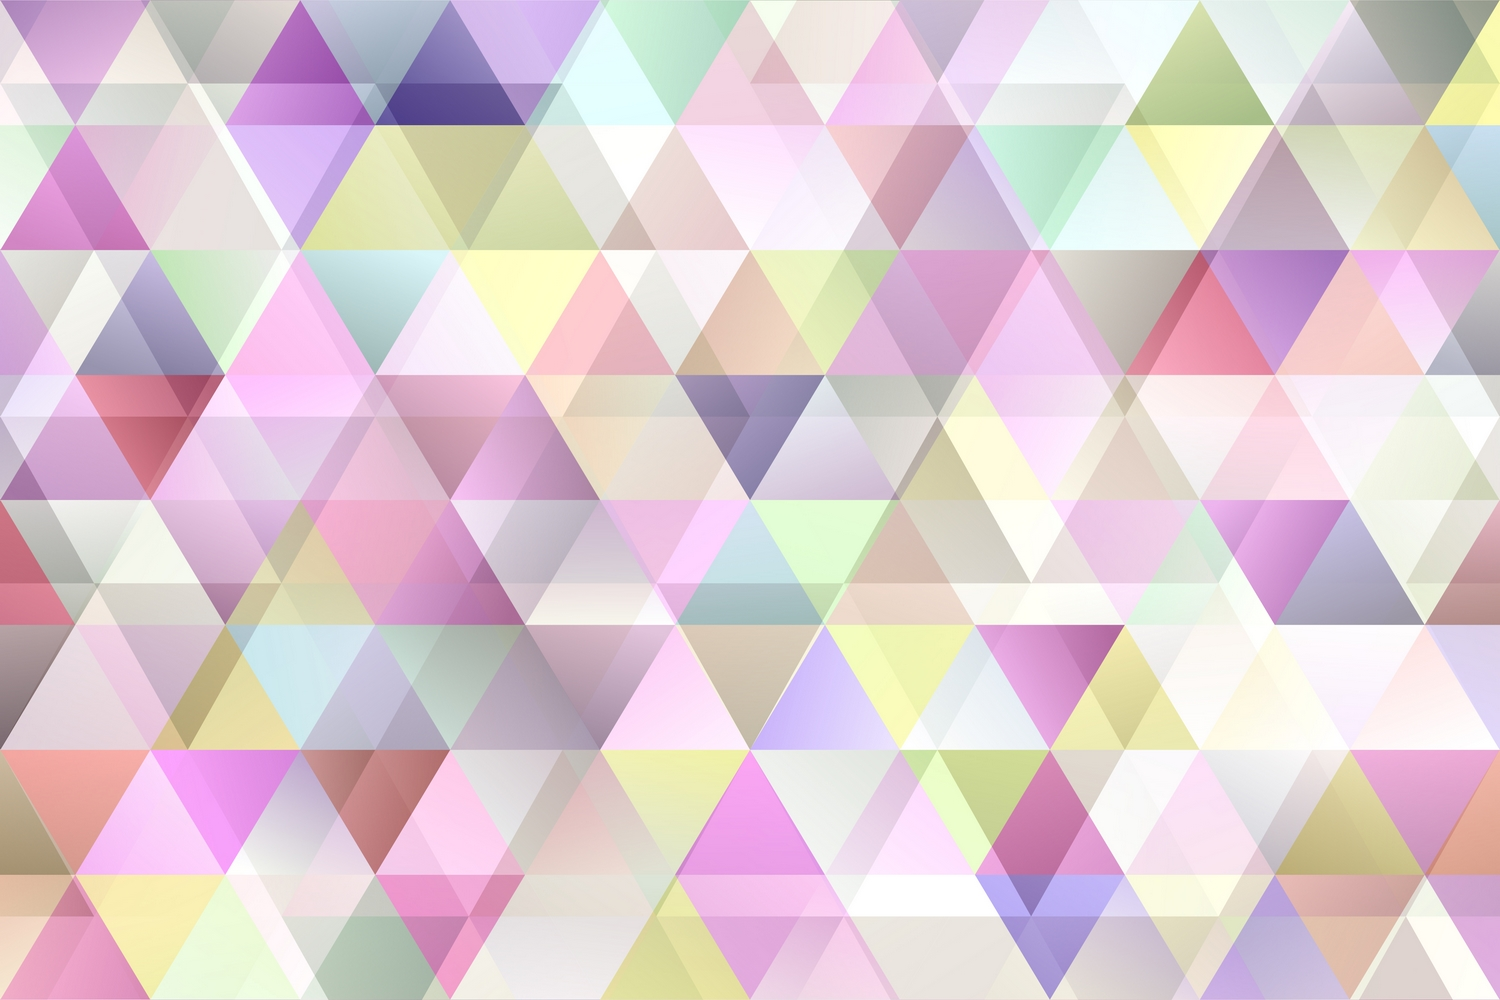 24 Gradient Polygon Backgrounds AI, EPS, JPG 5000x5000 example image 14